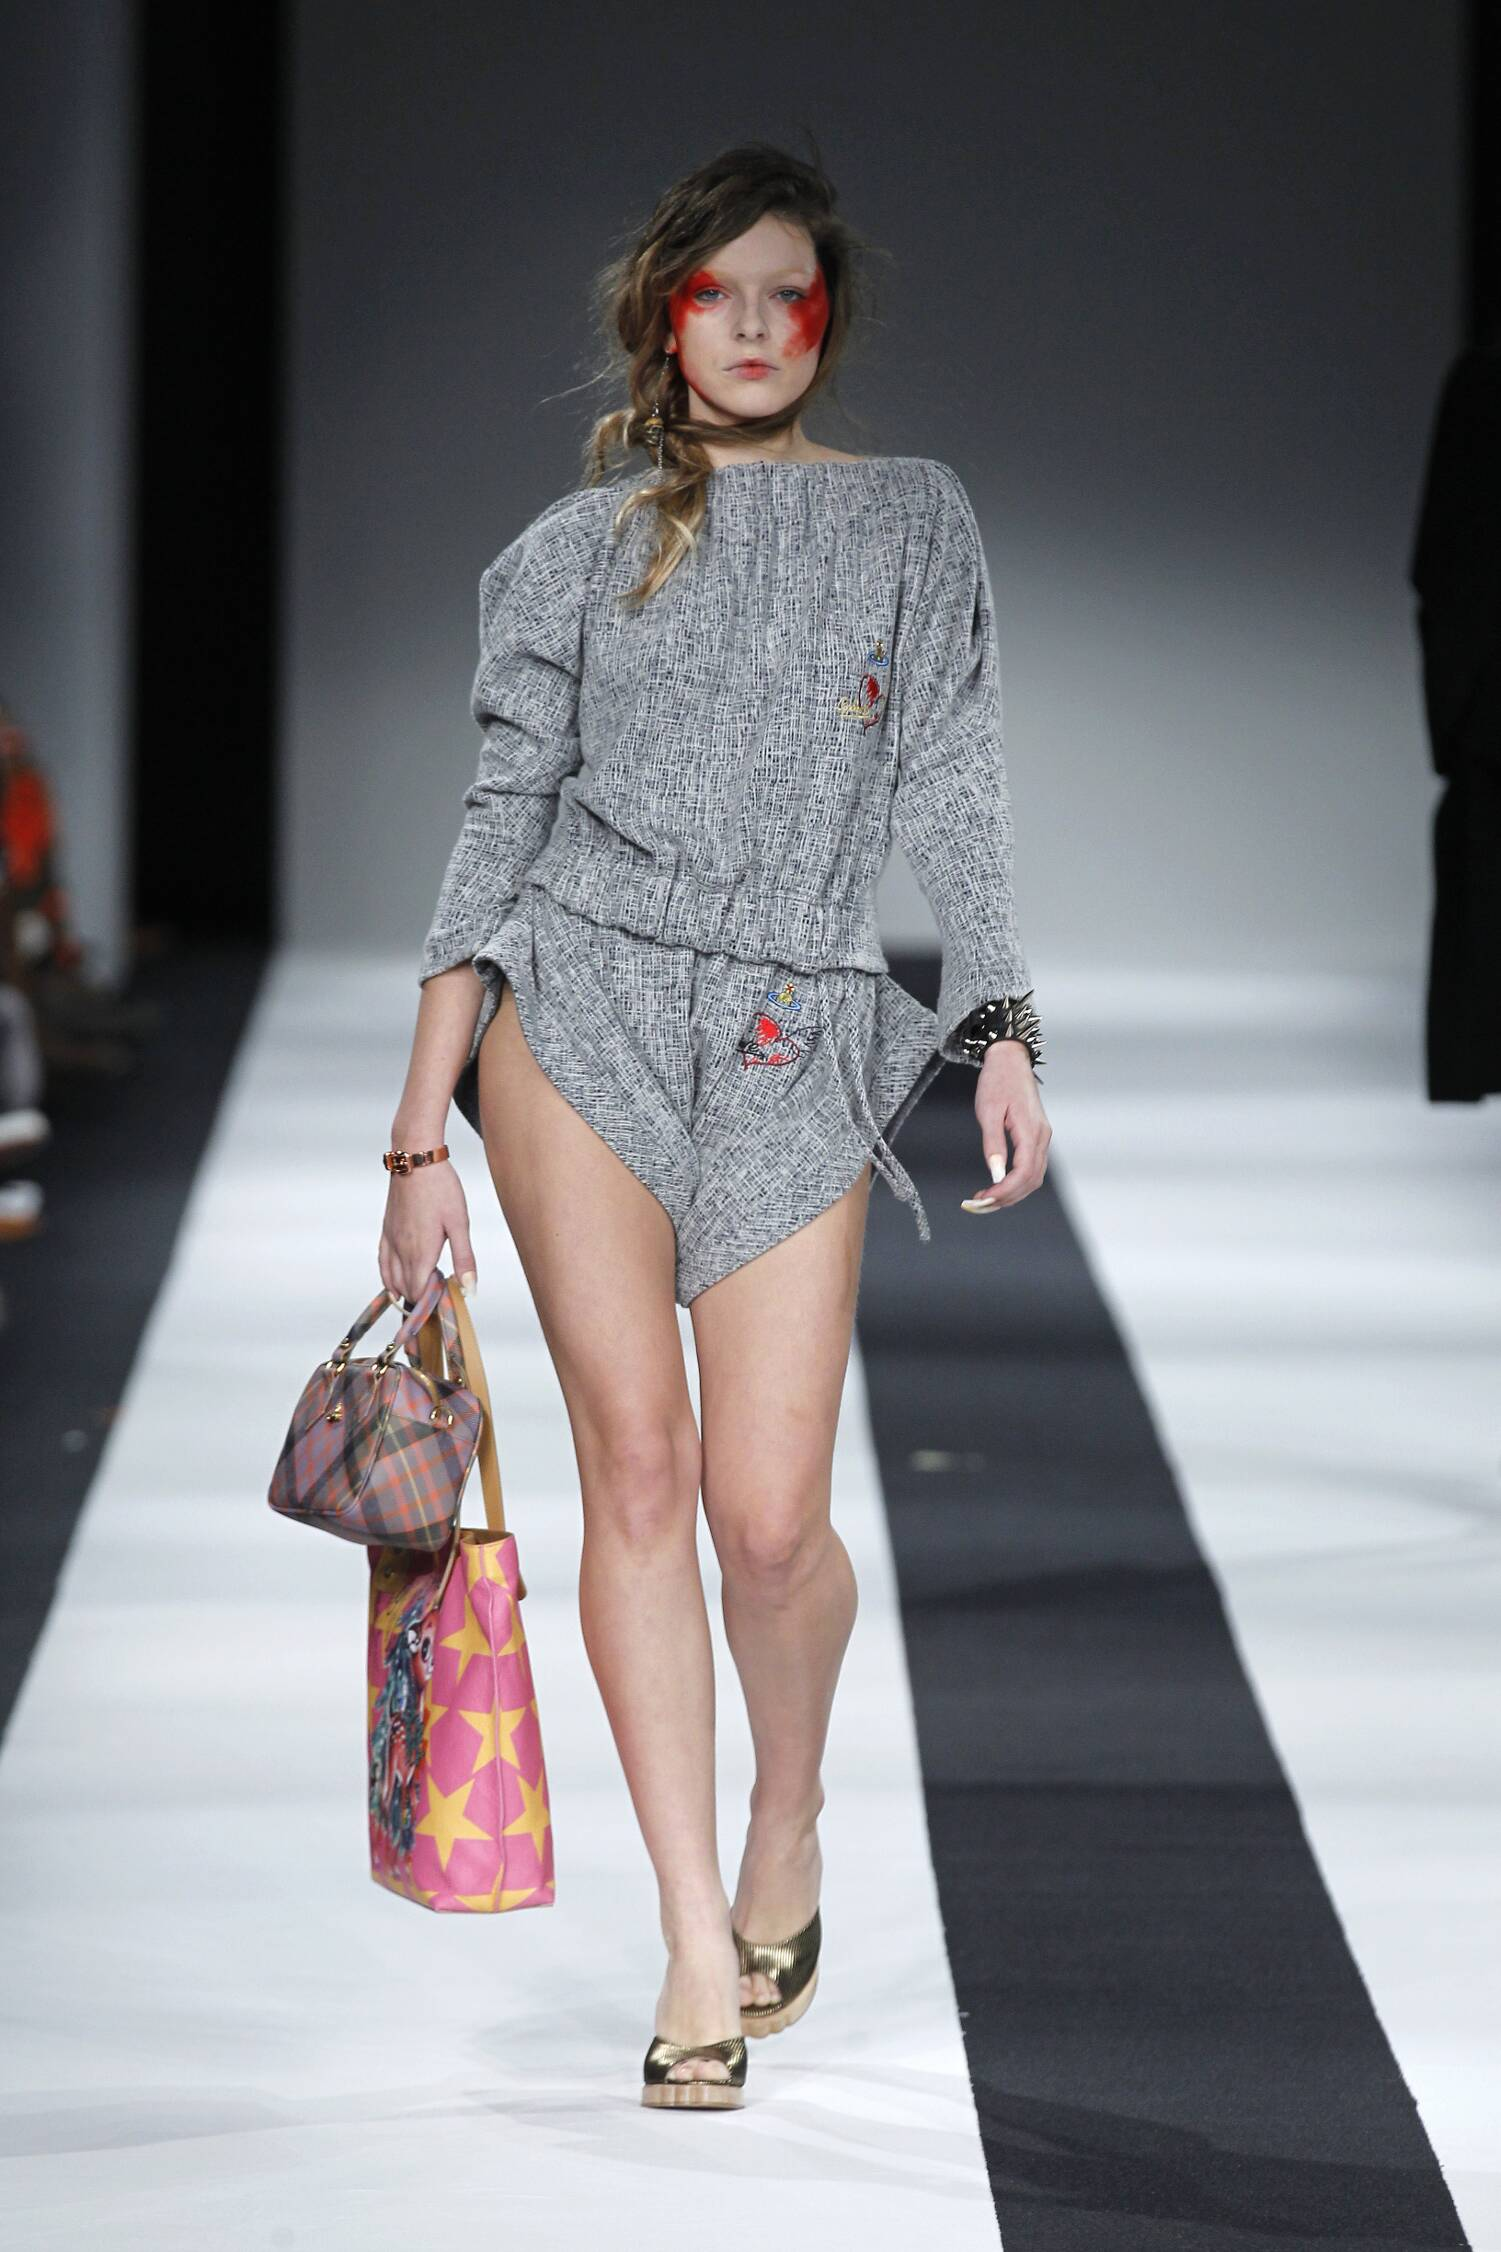 2016 Fall Fashion Woman Vivienne Westwood Red Label Collection